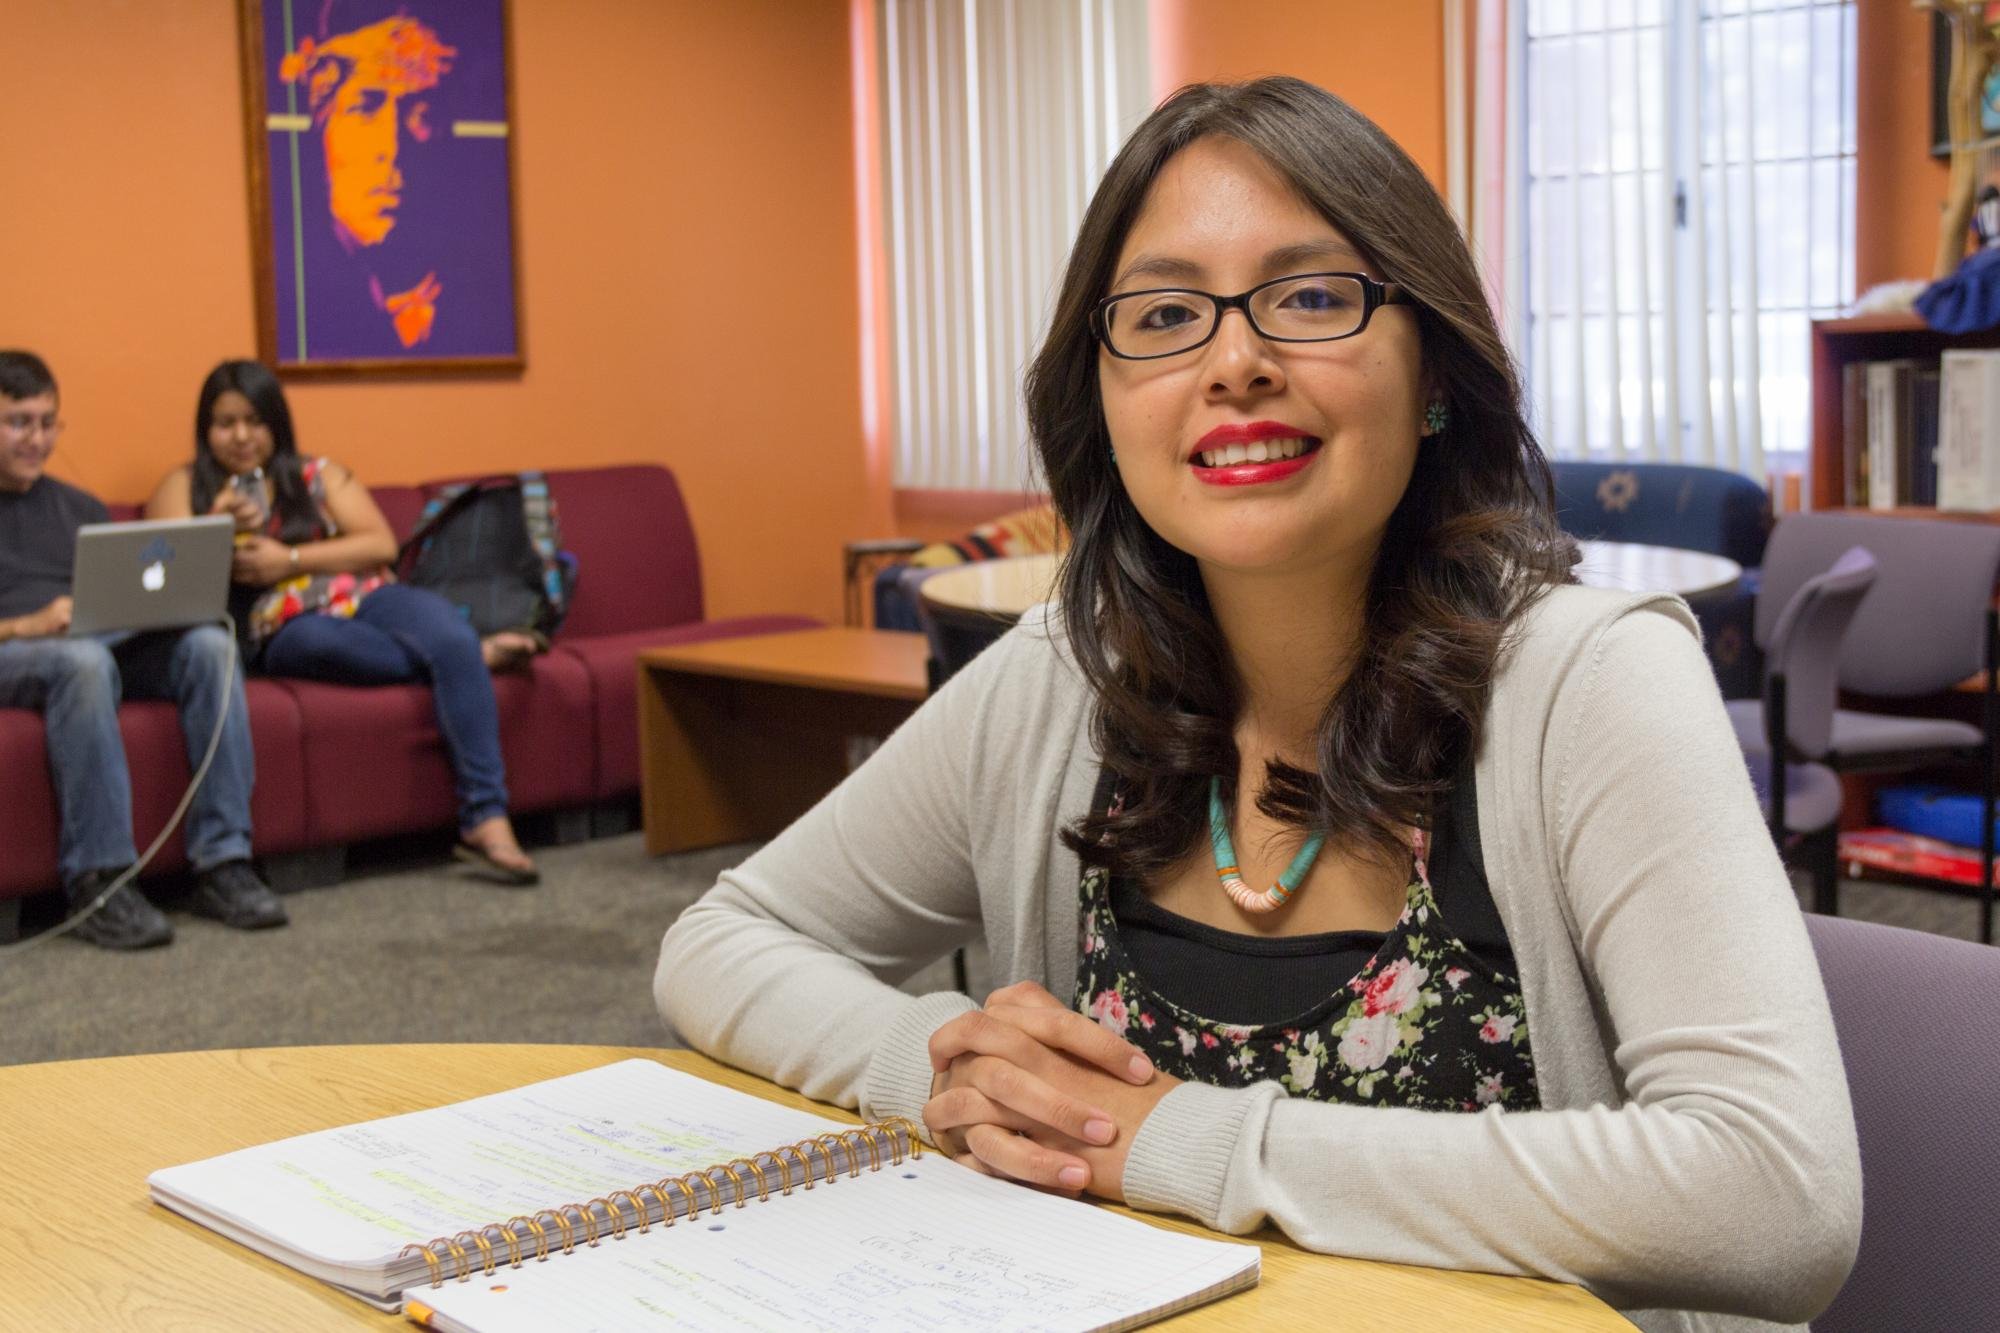 """""""The policy has enabled me to pay in-state tuition instead of out-of-state, which has been very helpful,"""" said Sheilah Allison , a physiology major from Mesa, Arizona."""